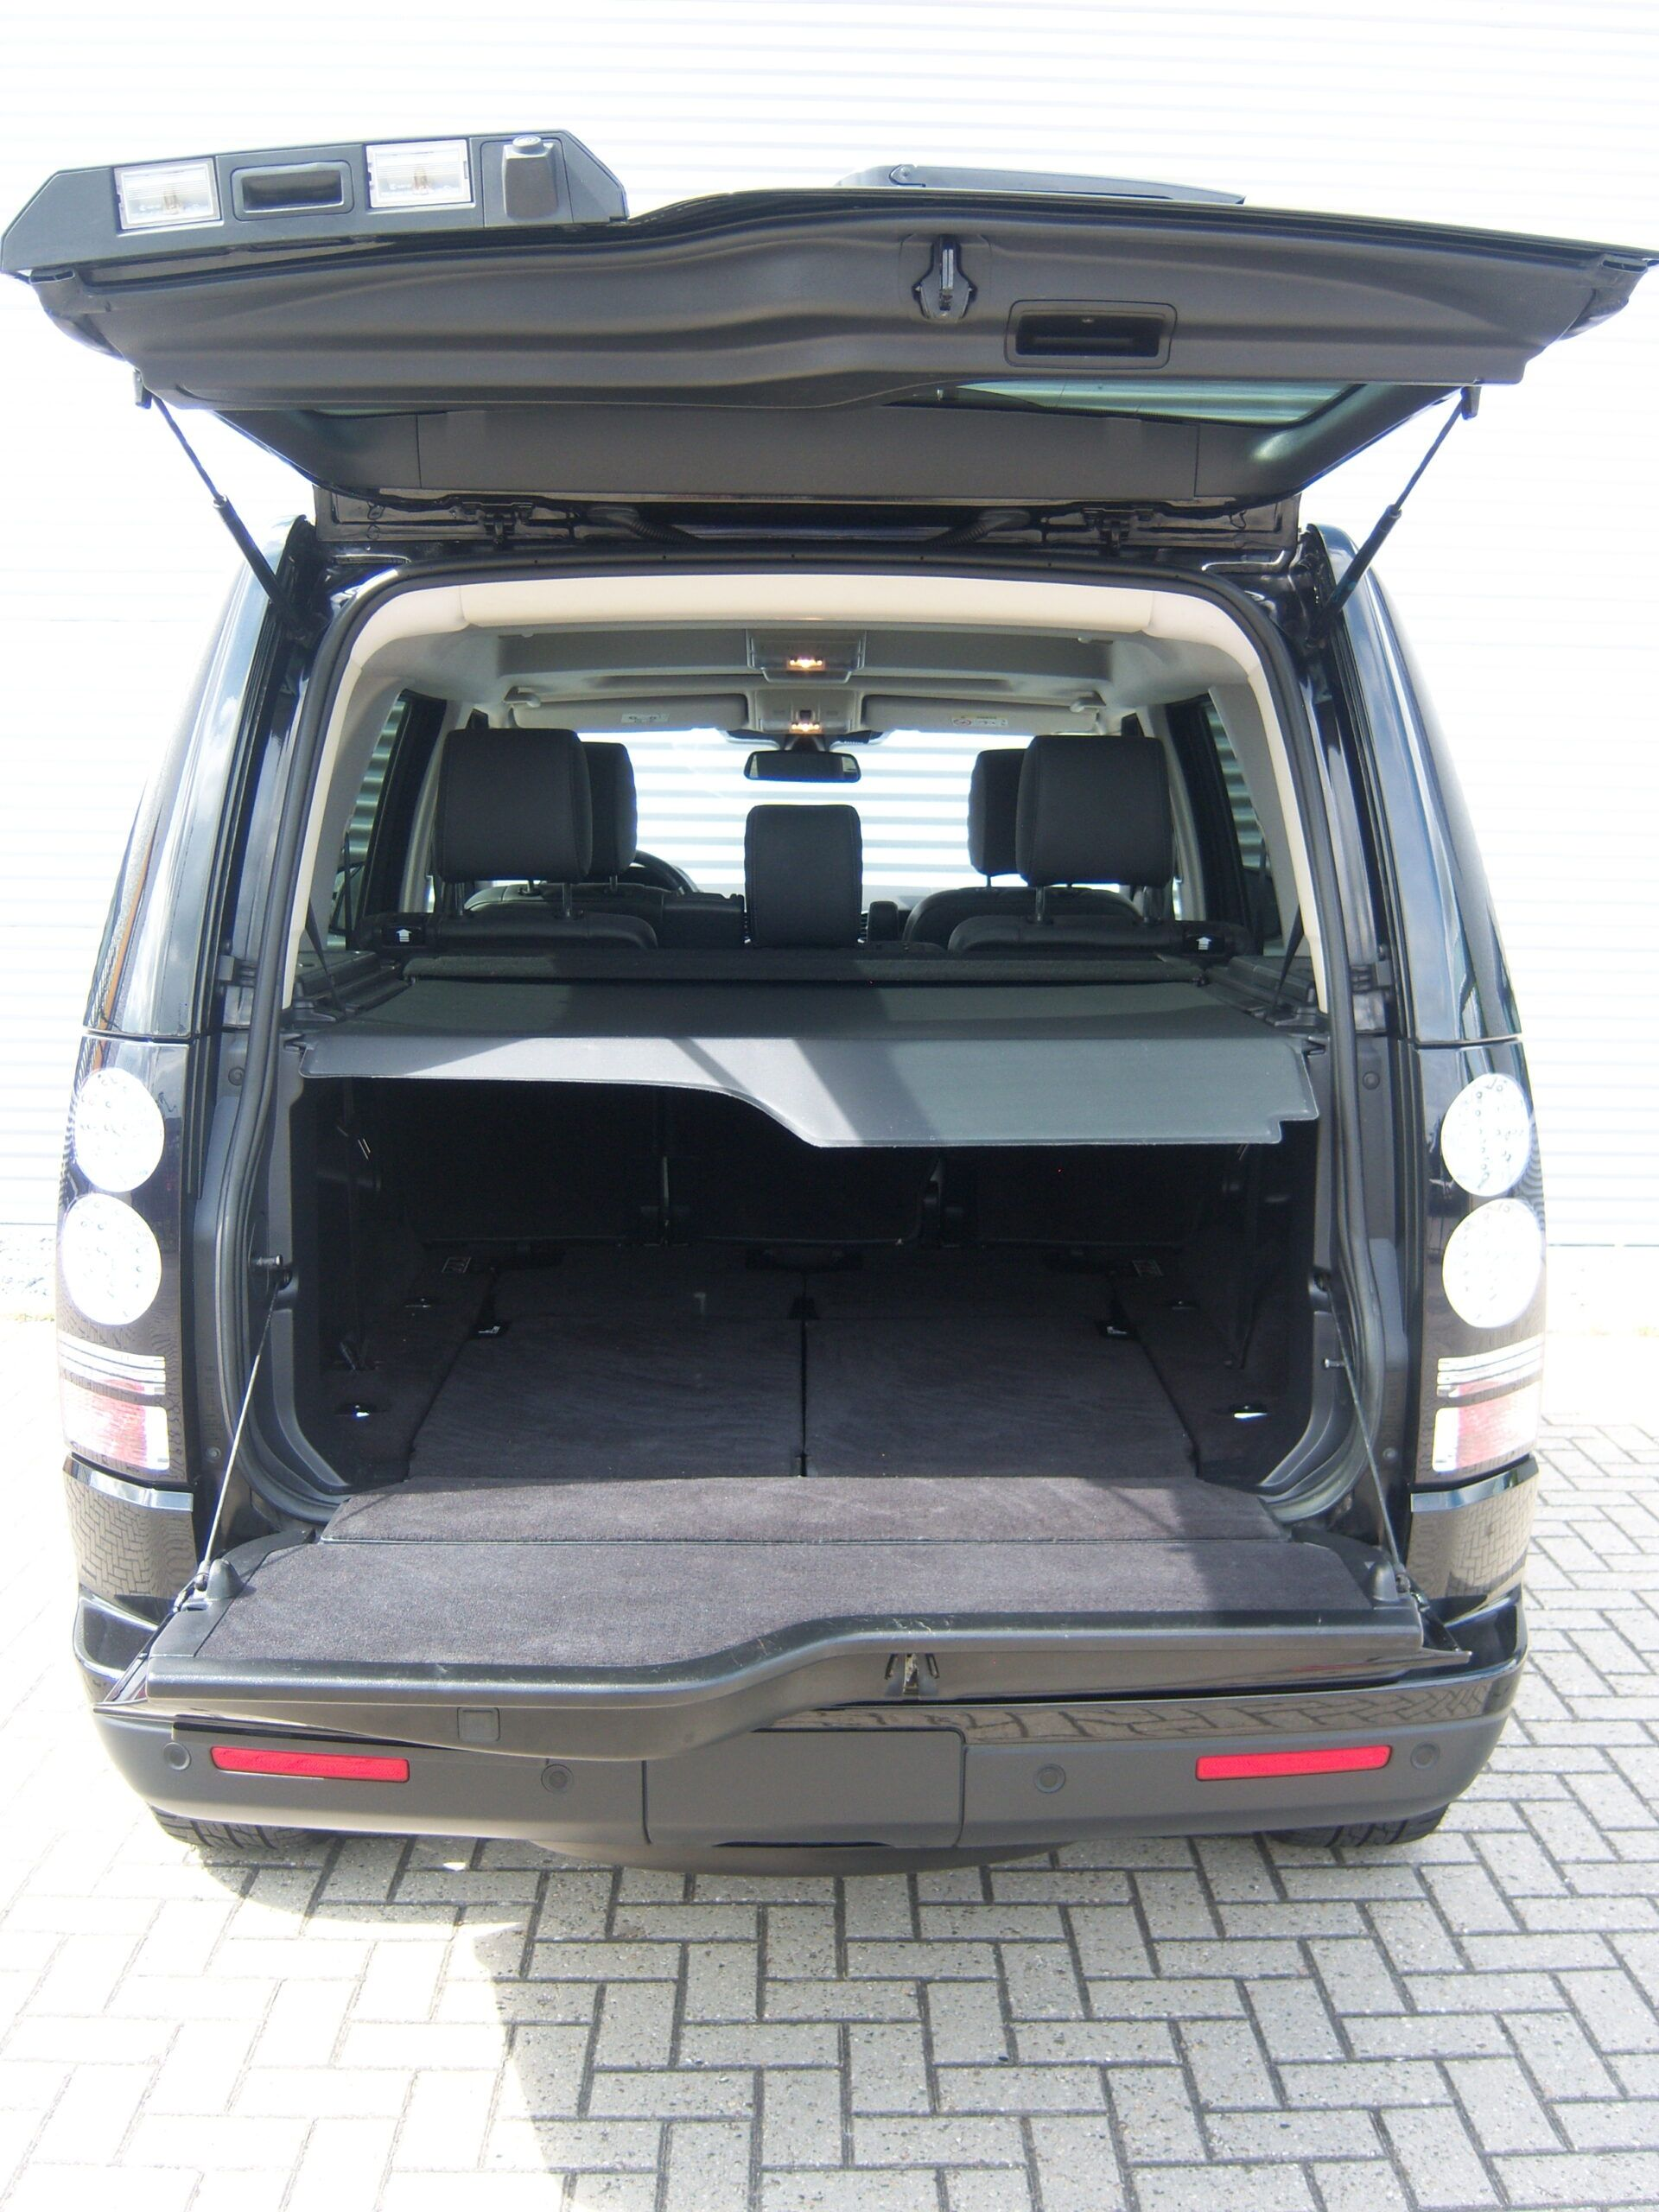 Land Rover Discovery 4 SDV6 HSE 7-Seater Landmark Edition